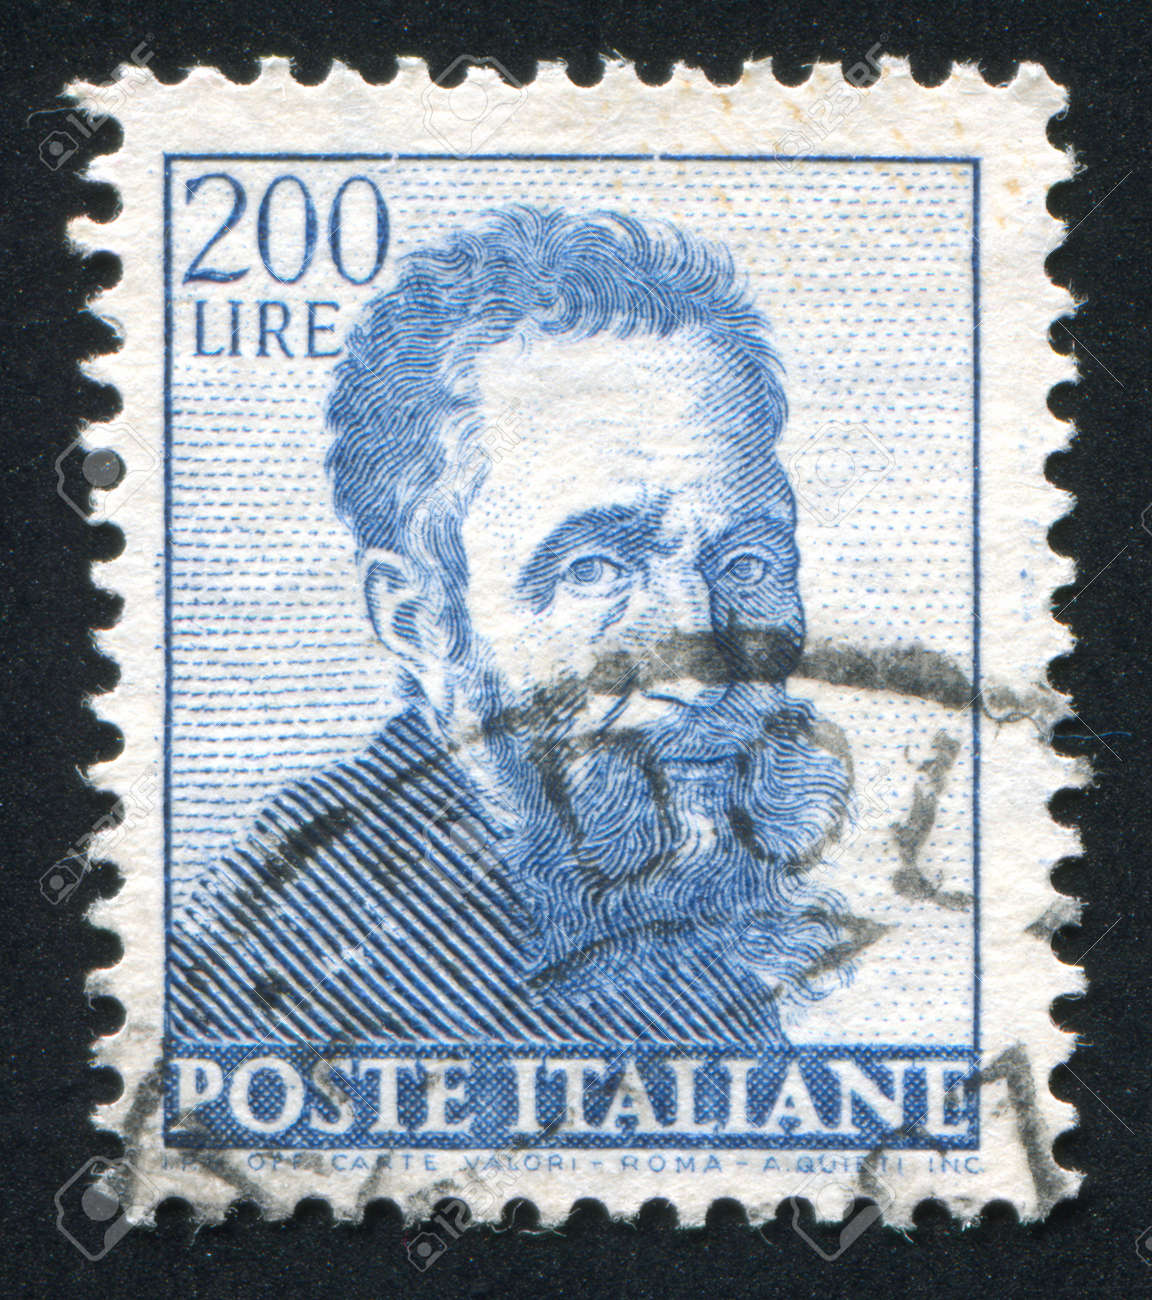 ITALY - CIRCA 1961: stamp printed by Italy, shows Self-portrait by Michelangelo, circa 1961 Stock Photo - 14755663